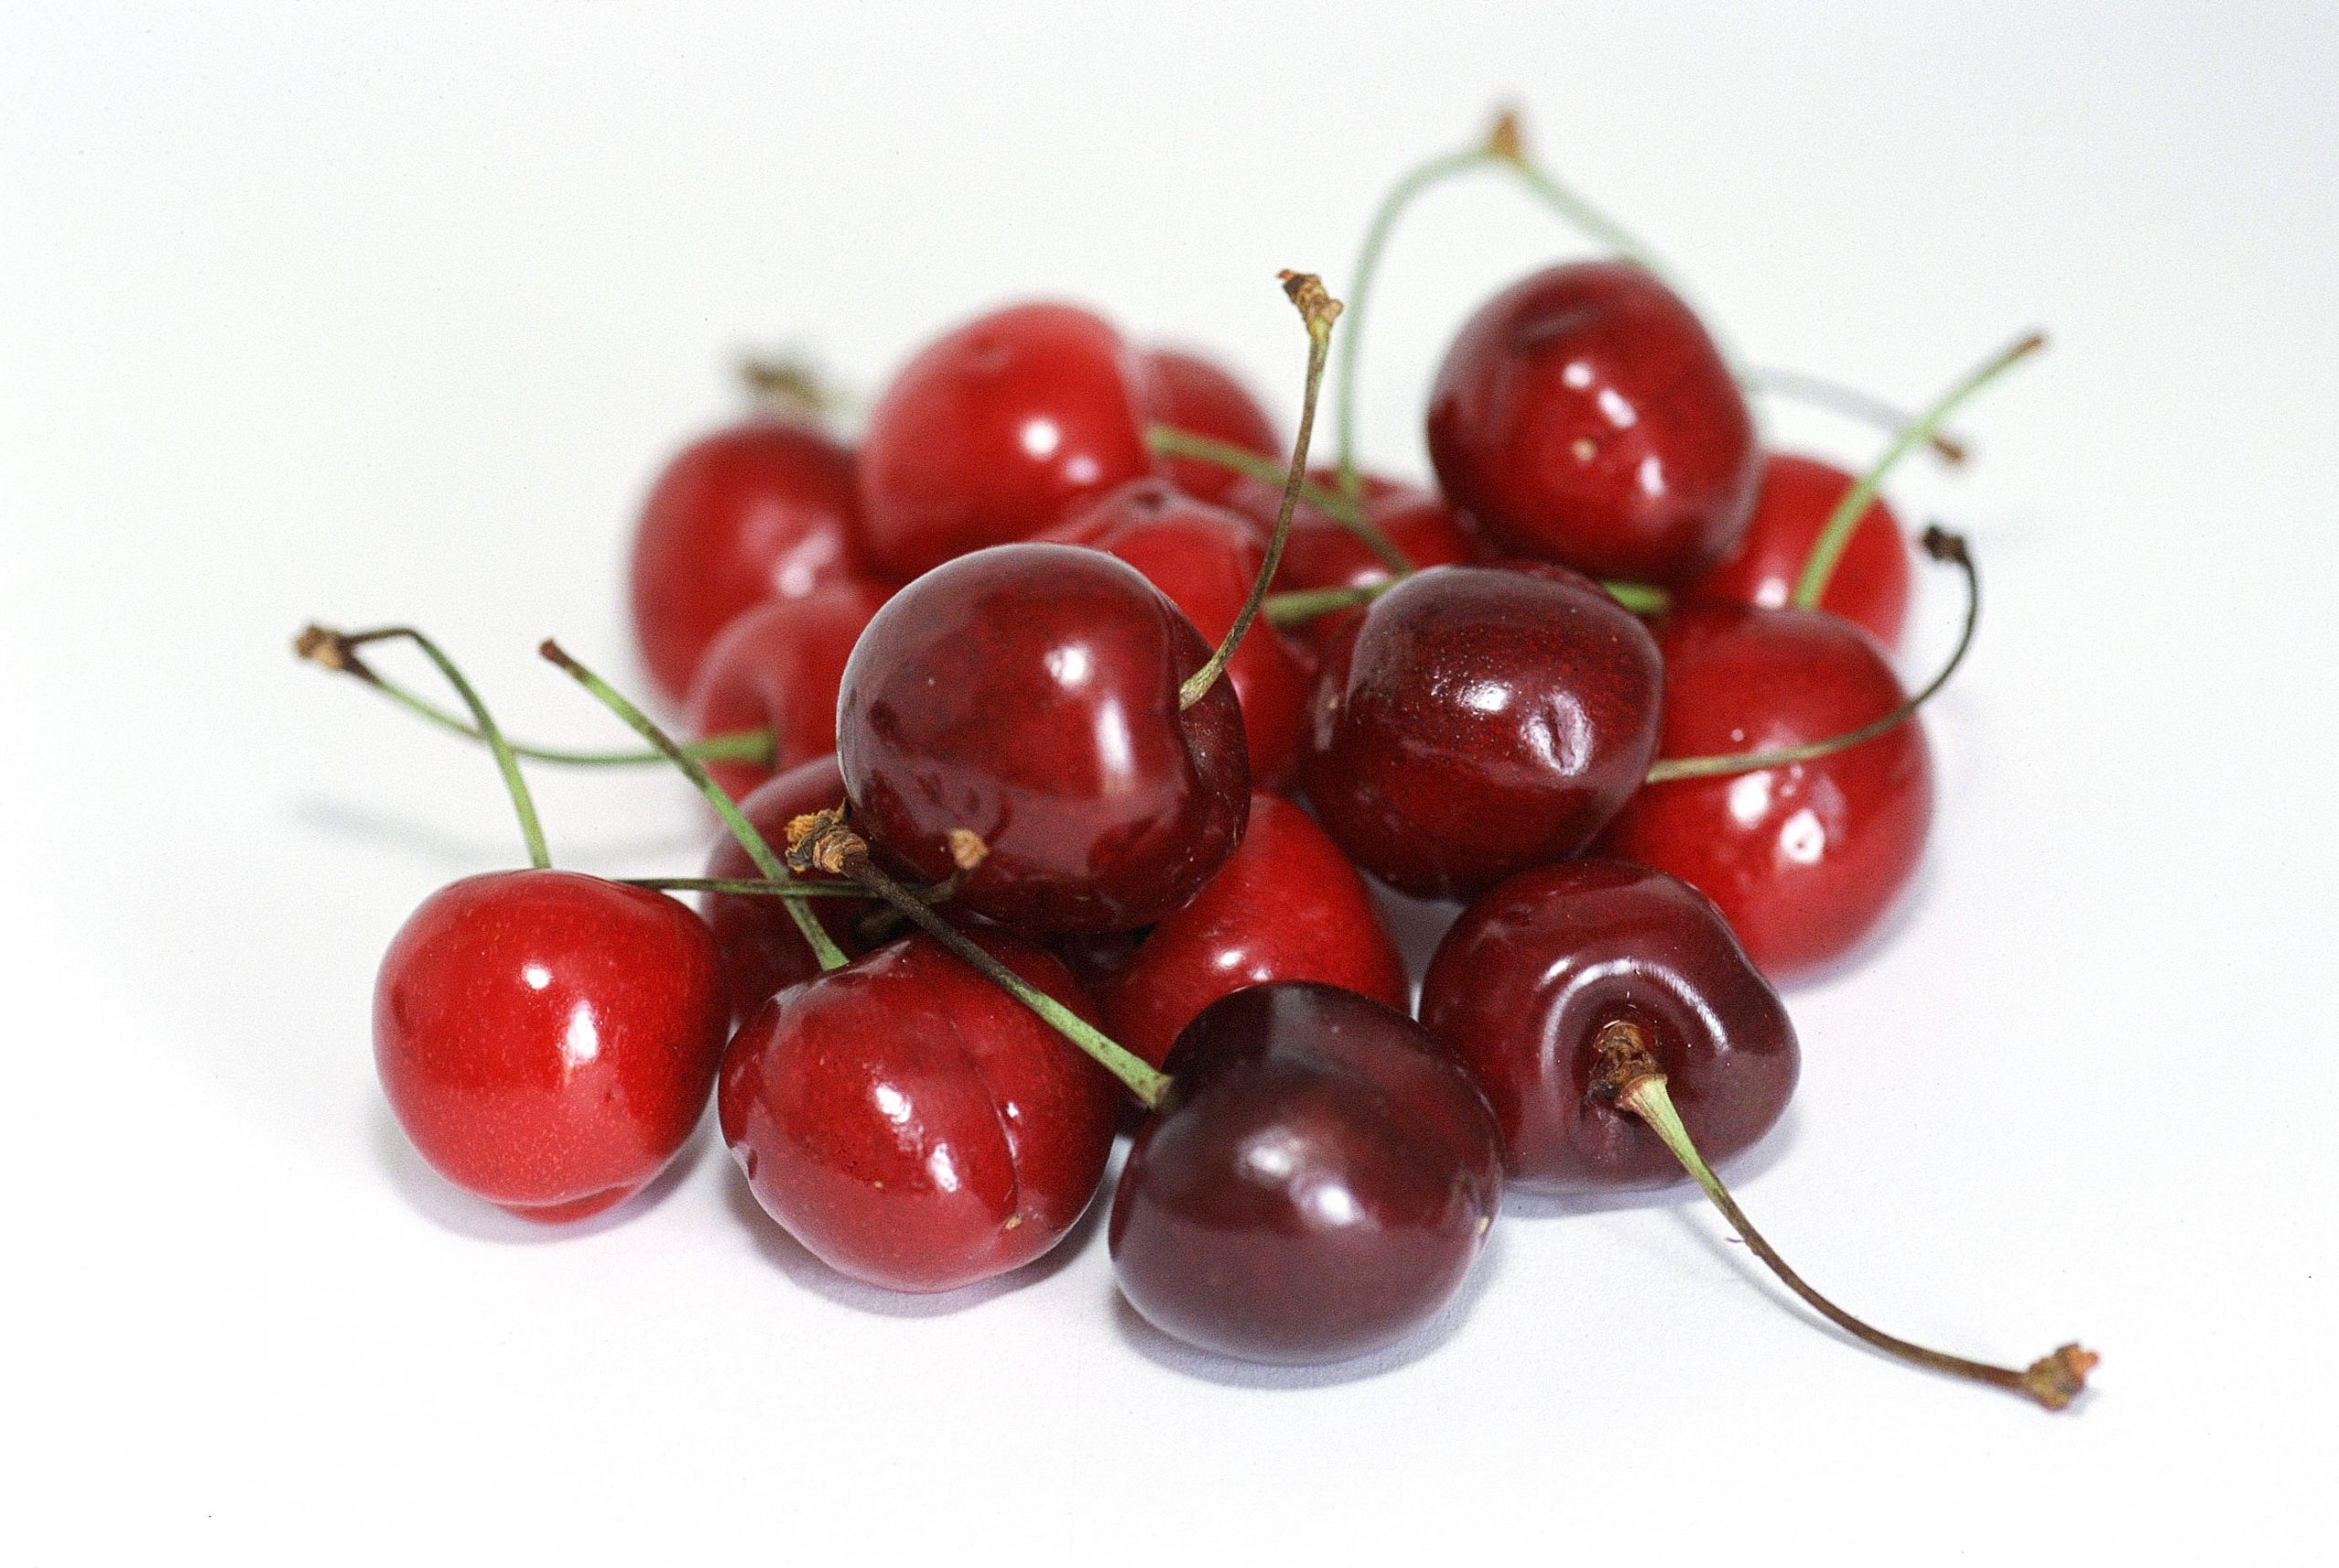 In 2015/16, the following weather conditions combined to reduce yields of cherries, table grapes and apples in Chile: 1) higher than ideal temperatures reduced the number of chill hours during the winter; 2) rainfall during the spring and harvest season; and, 3) high relative humidity during the summer.